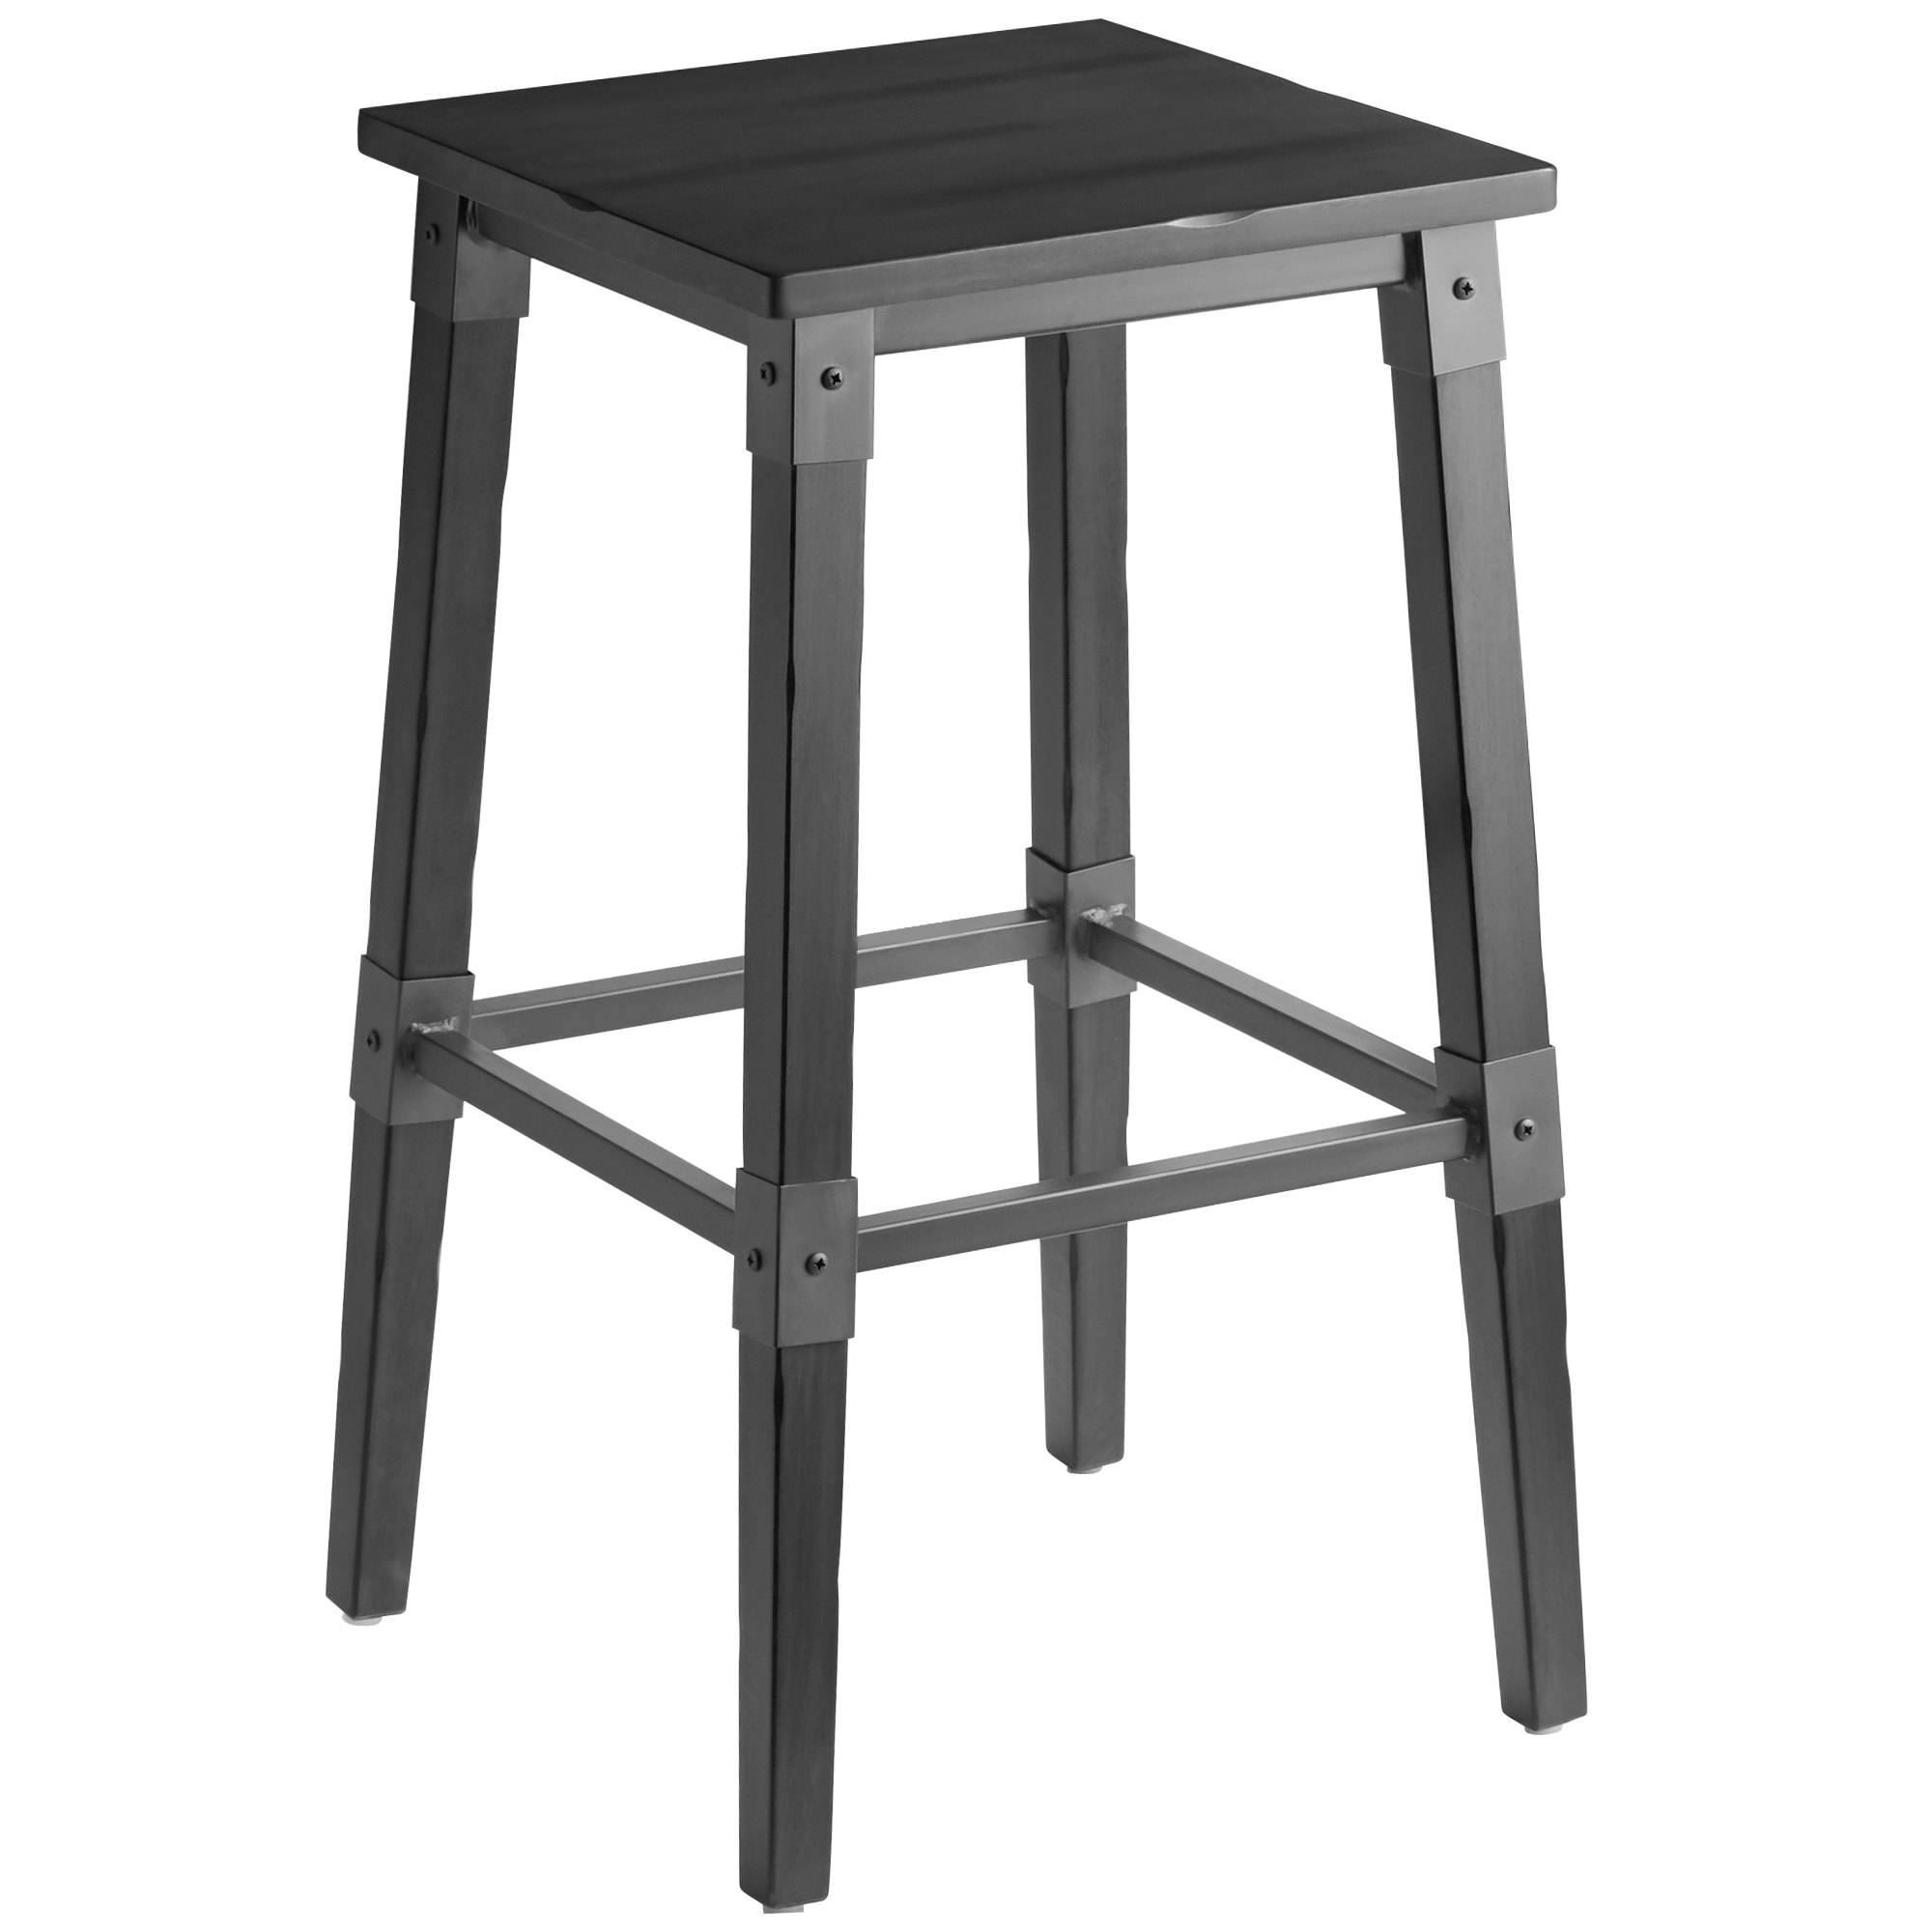 #73 - Rustic Industrial Style Backless Bar Stool with Slate Gray Finish